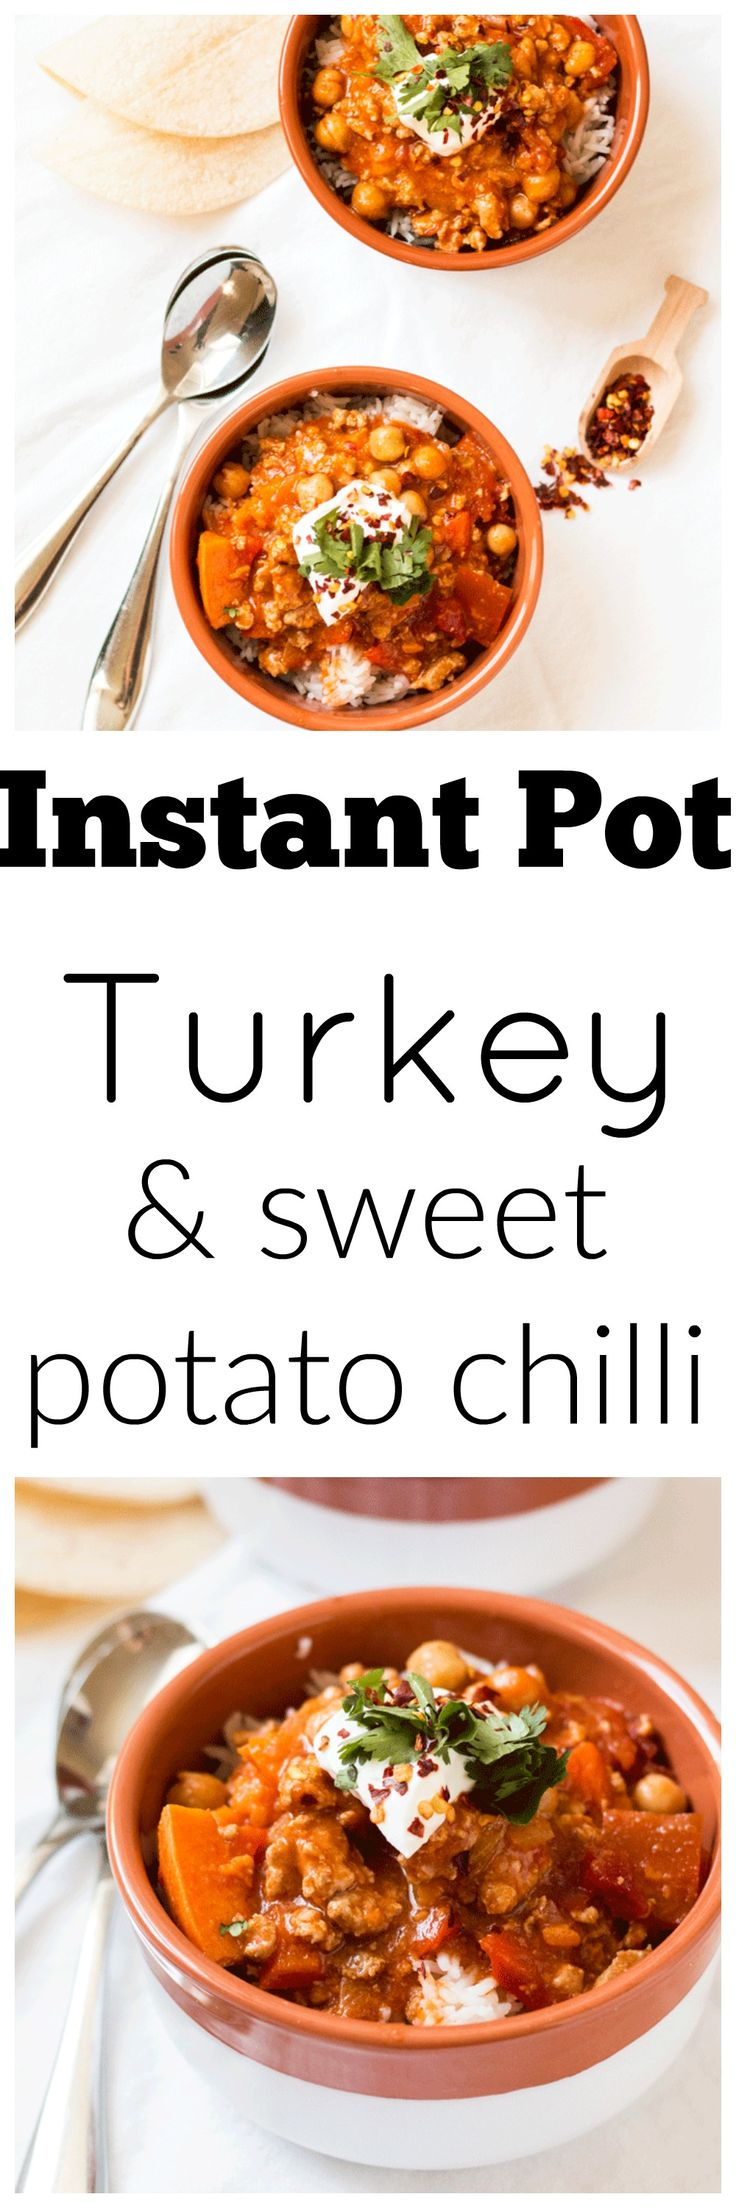 Turkey and Sweet Potato Chilli in the Instant Pot. Dinner can be super delicious and on the table in under 30 minutes. The kids will love it via @wholefoodbellies